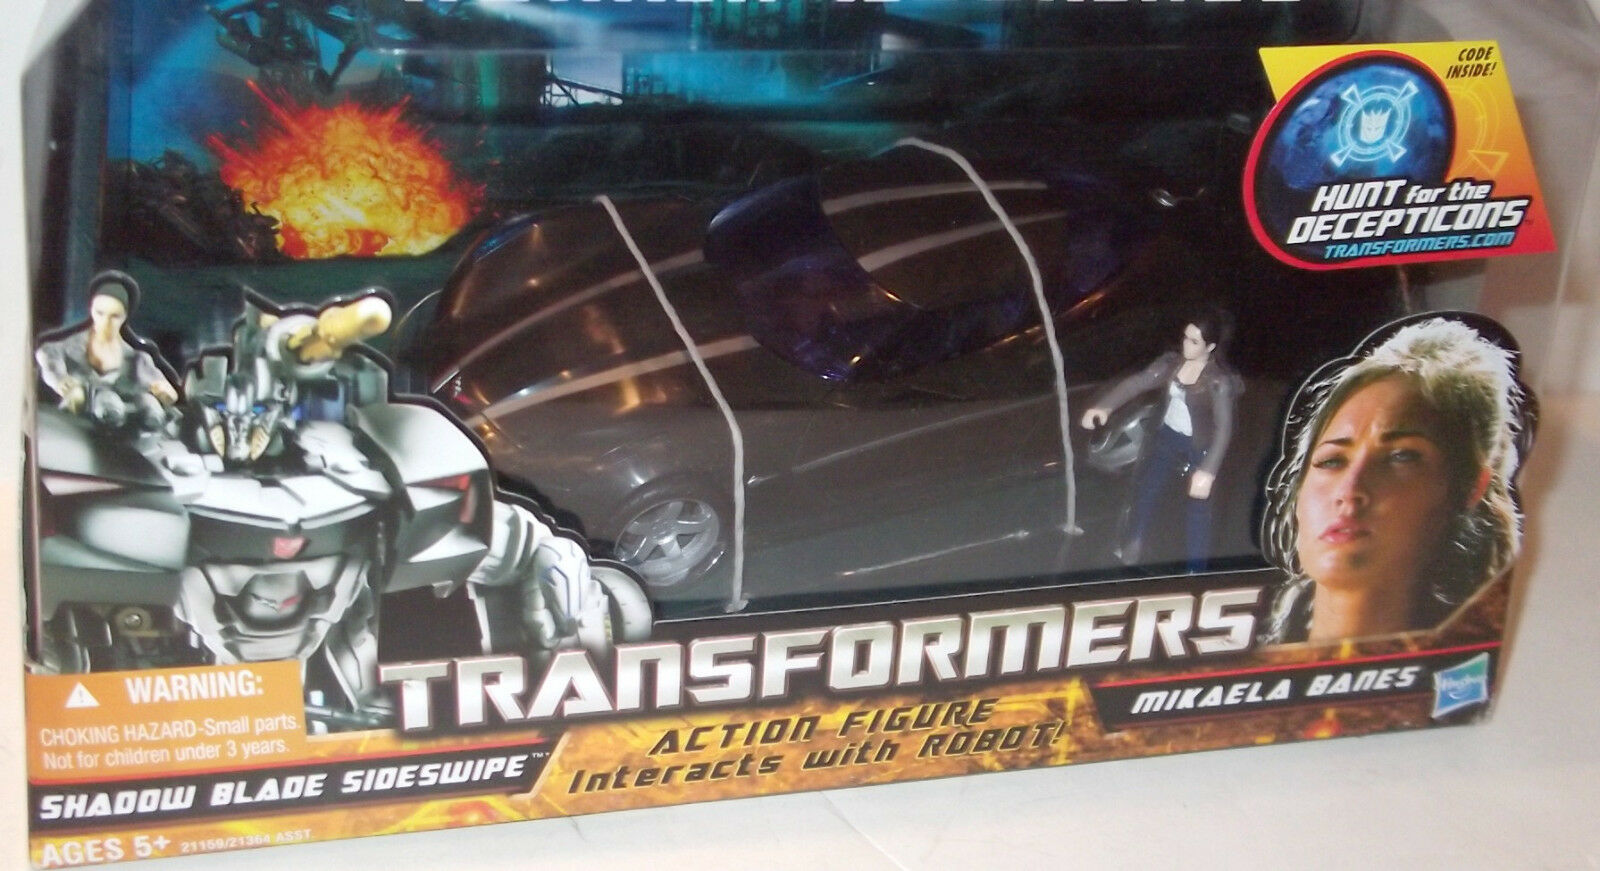 IMMACULATE ✰ AUTHENTIC from USA ✰ ALLIANCE SHADOW BLADE SIDESWIPE Voyager HFTD